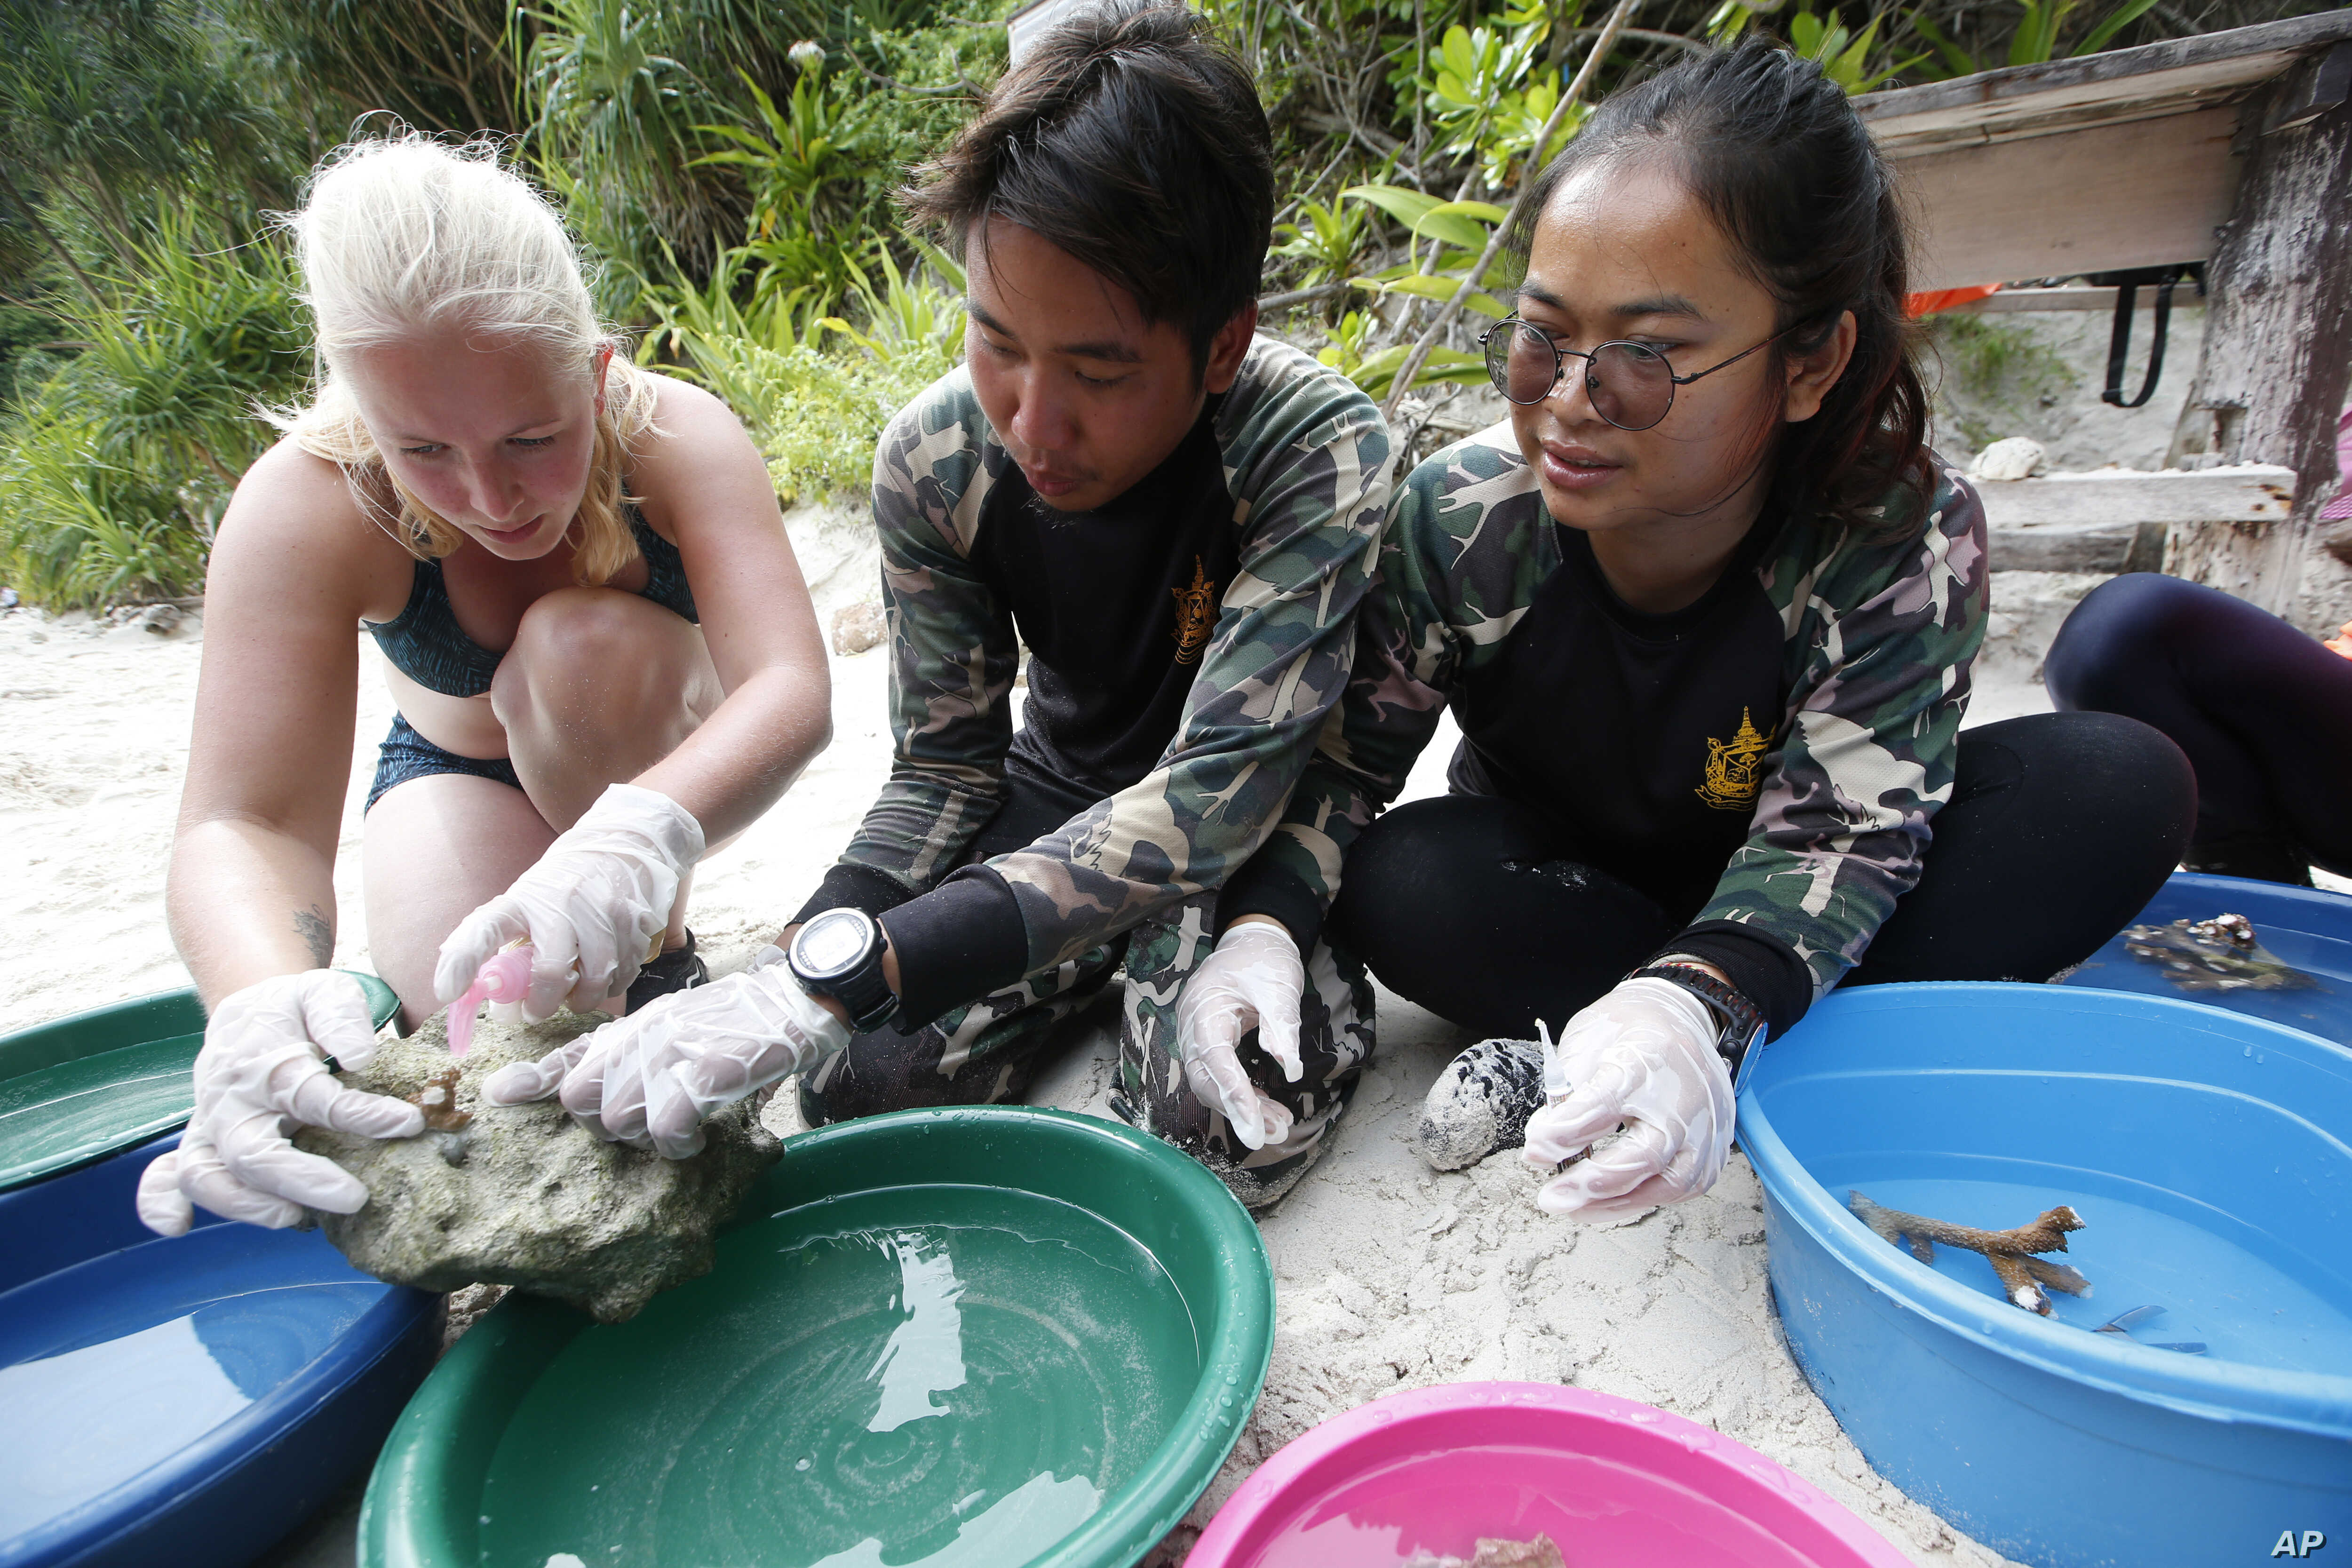 Jeanette van Leeuwin, a 29-year-old from The Netherlands, helps national park rangers with coral propagation on Maya Bay, Phi Phi Leh island in Krabi province, Thailand, May 31, 2018.